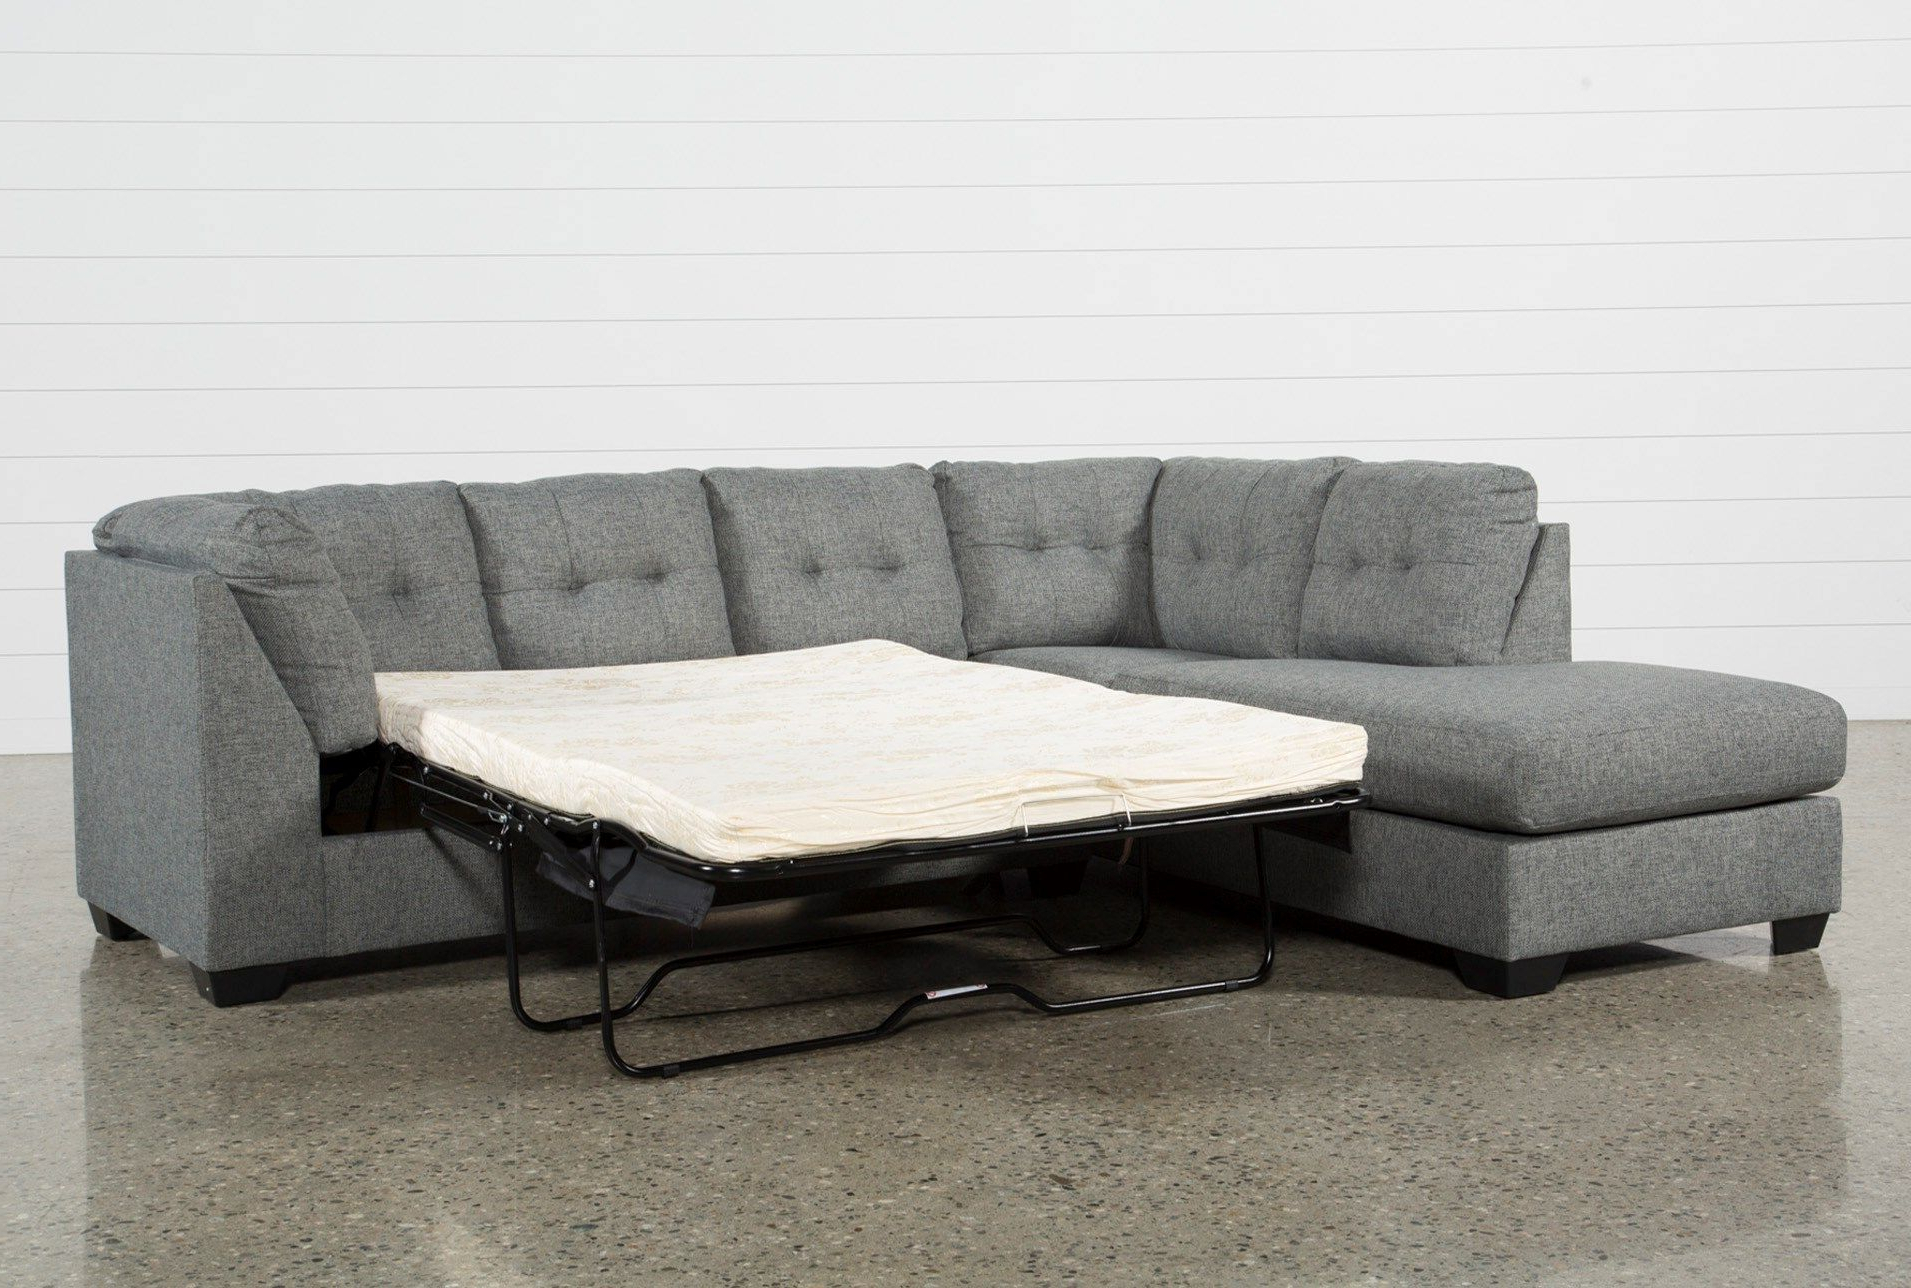 Newest Arrowmask 2 Piece Sectional W/sleeper & Left Facing Chaise For Arrowmask 2 Piece Sectionals With Laf Chaise (Gallery 2 of 20)